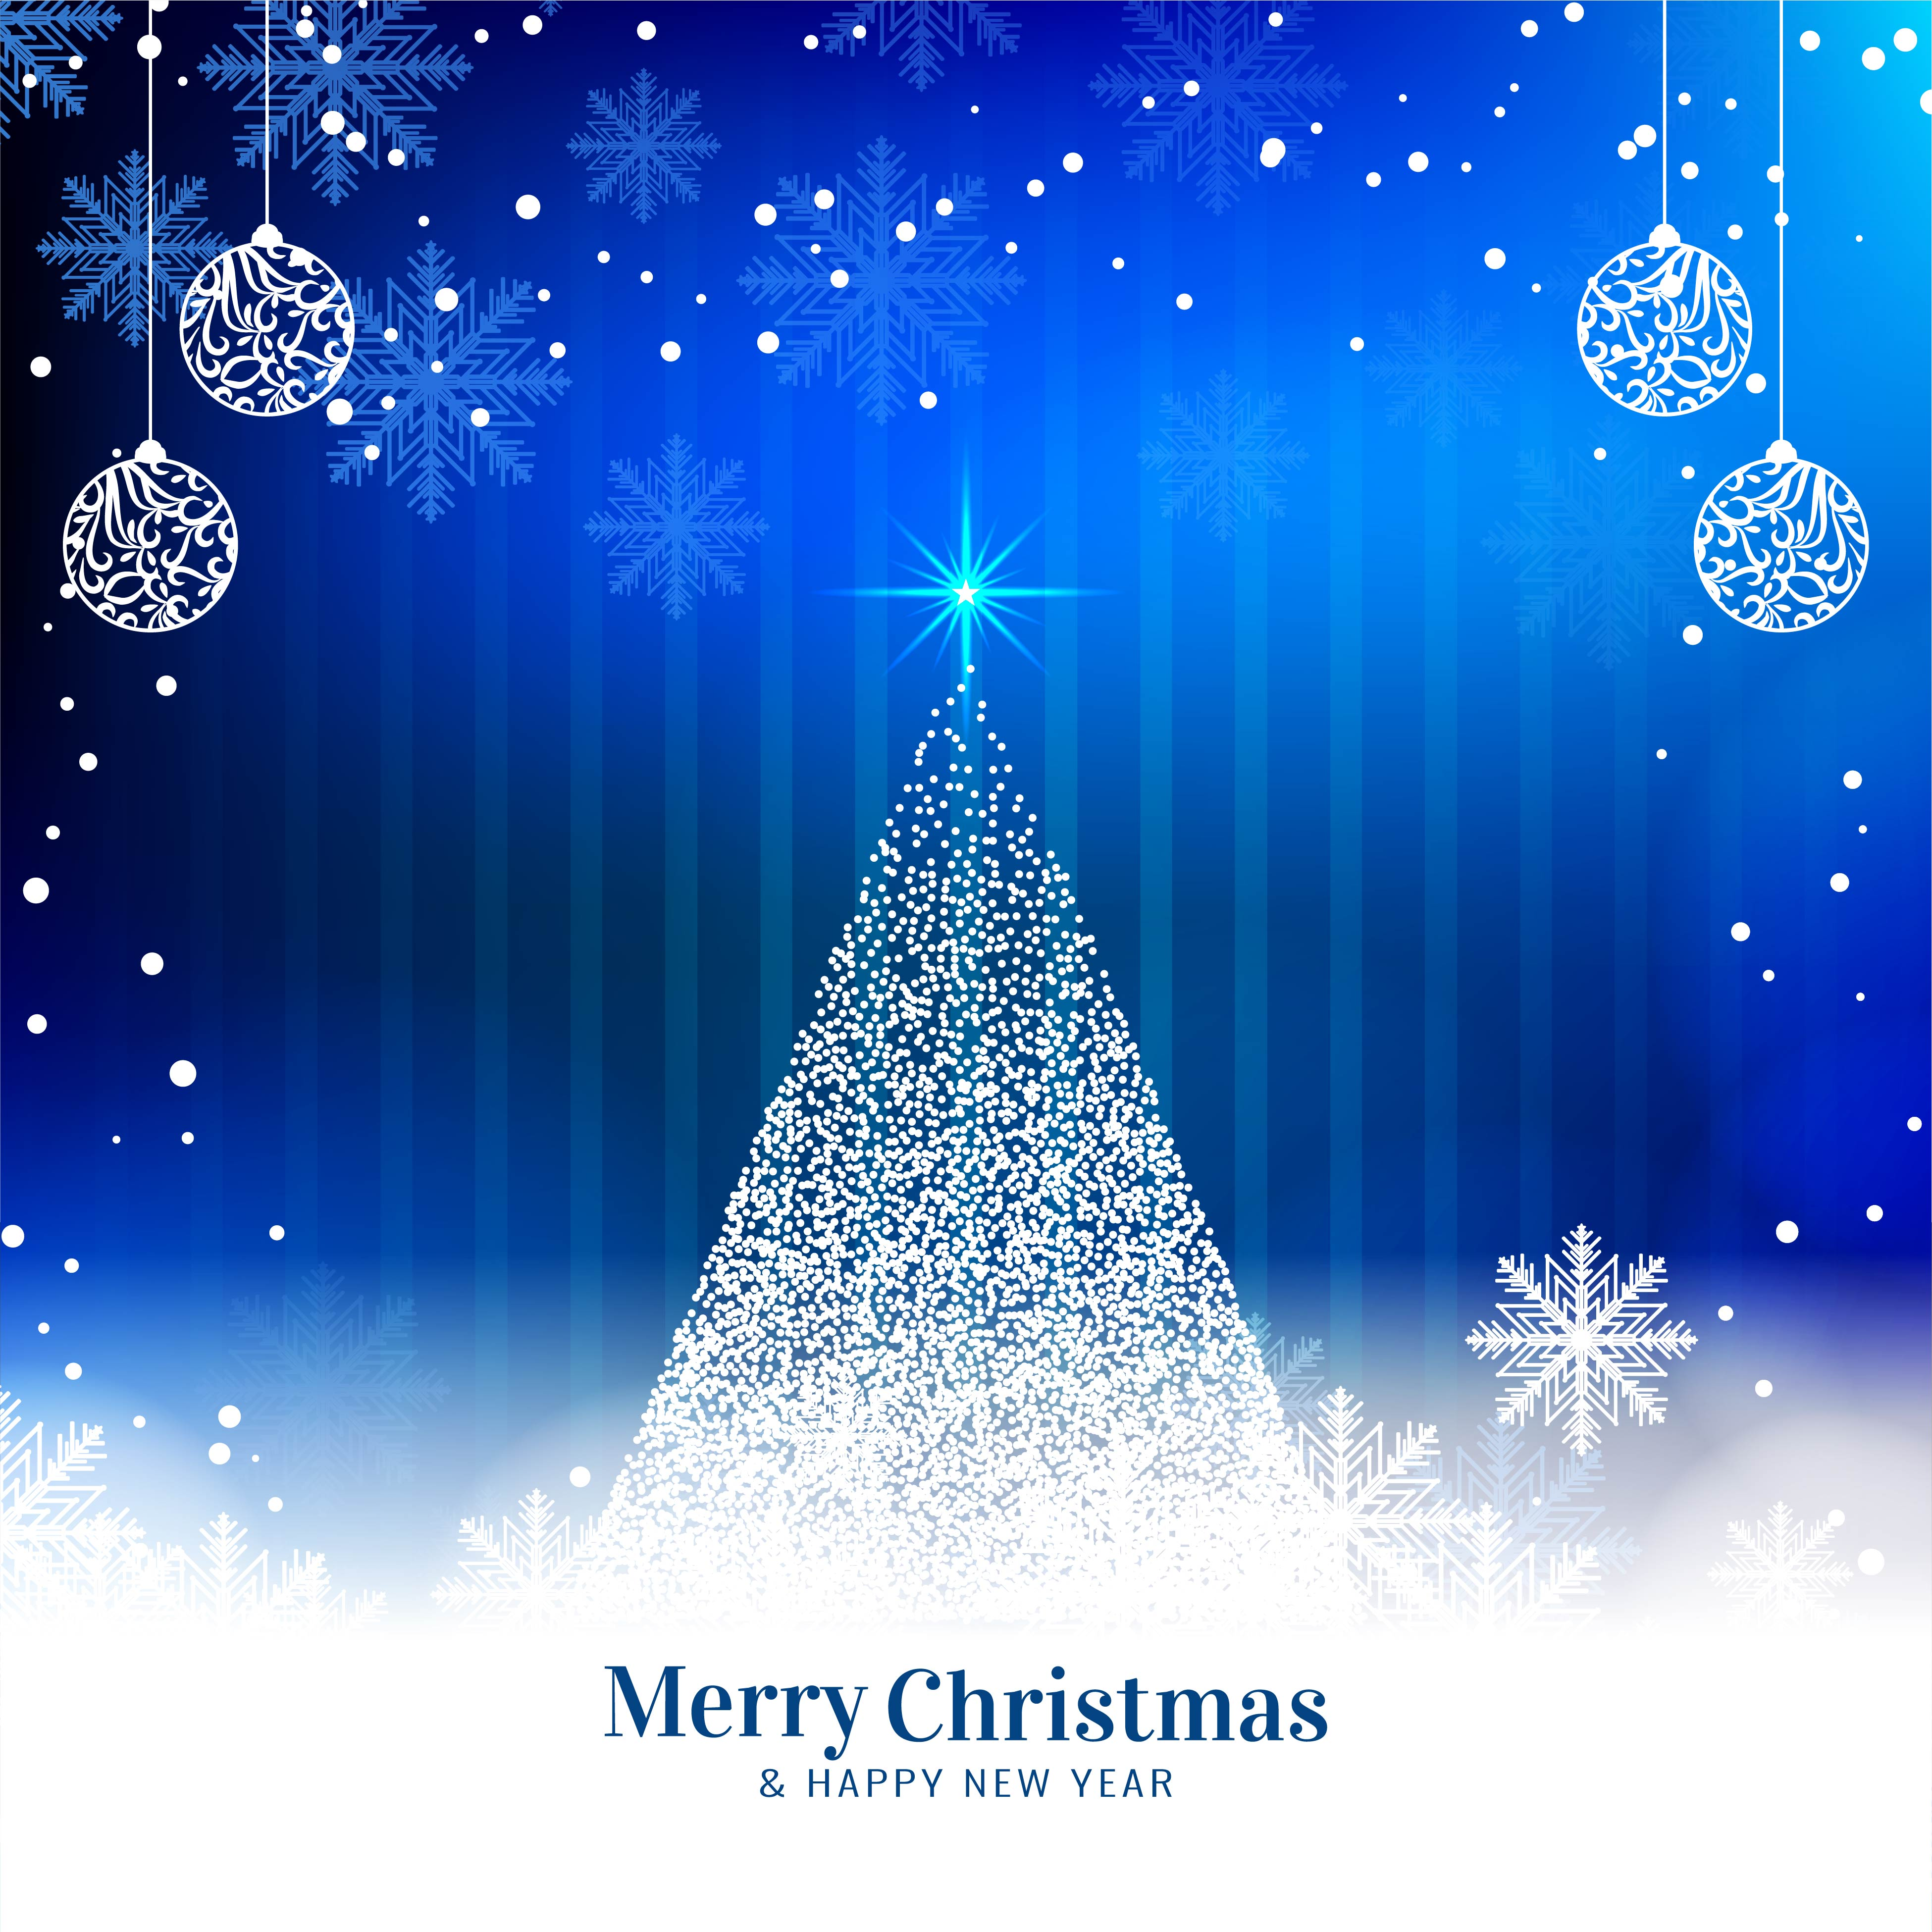 Blue Christmas Tree Wallpaper: Abstract Merry Christmas Blue Background